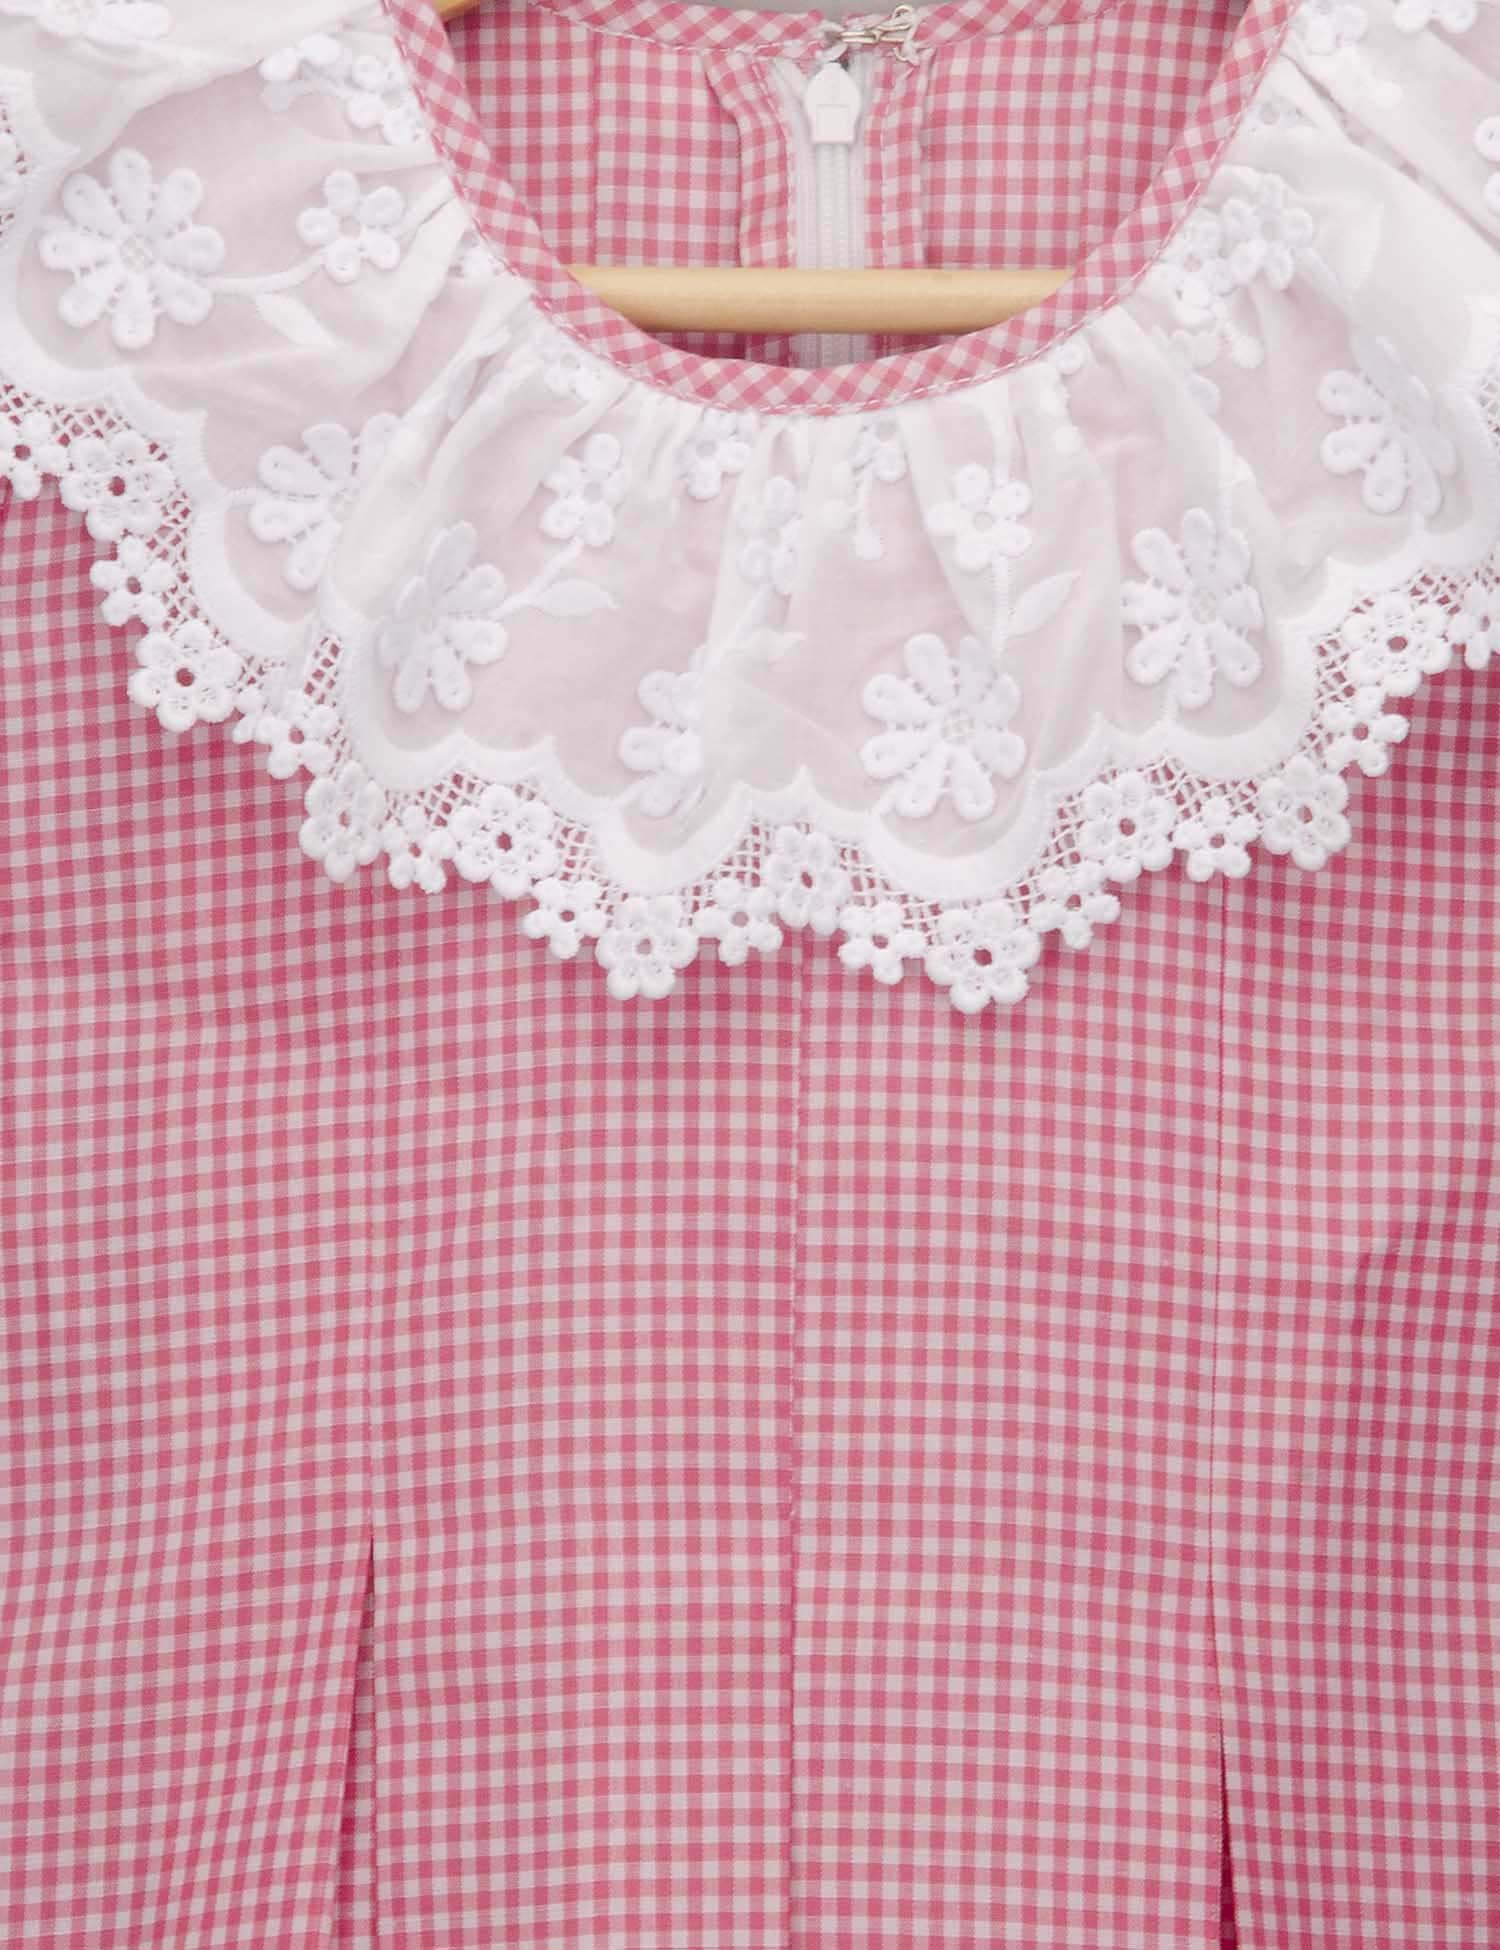 Pink Checked Dress with Ruffled Lace Collar